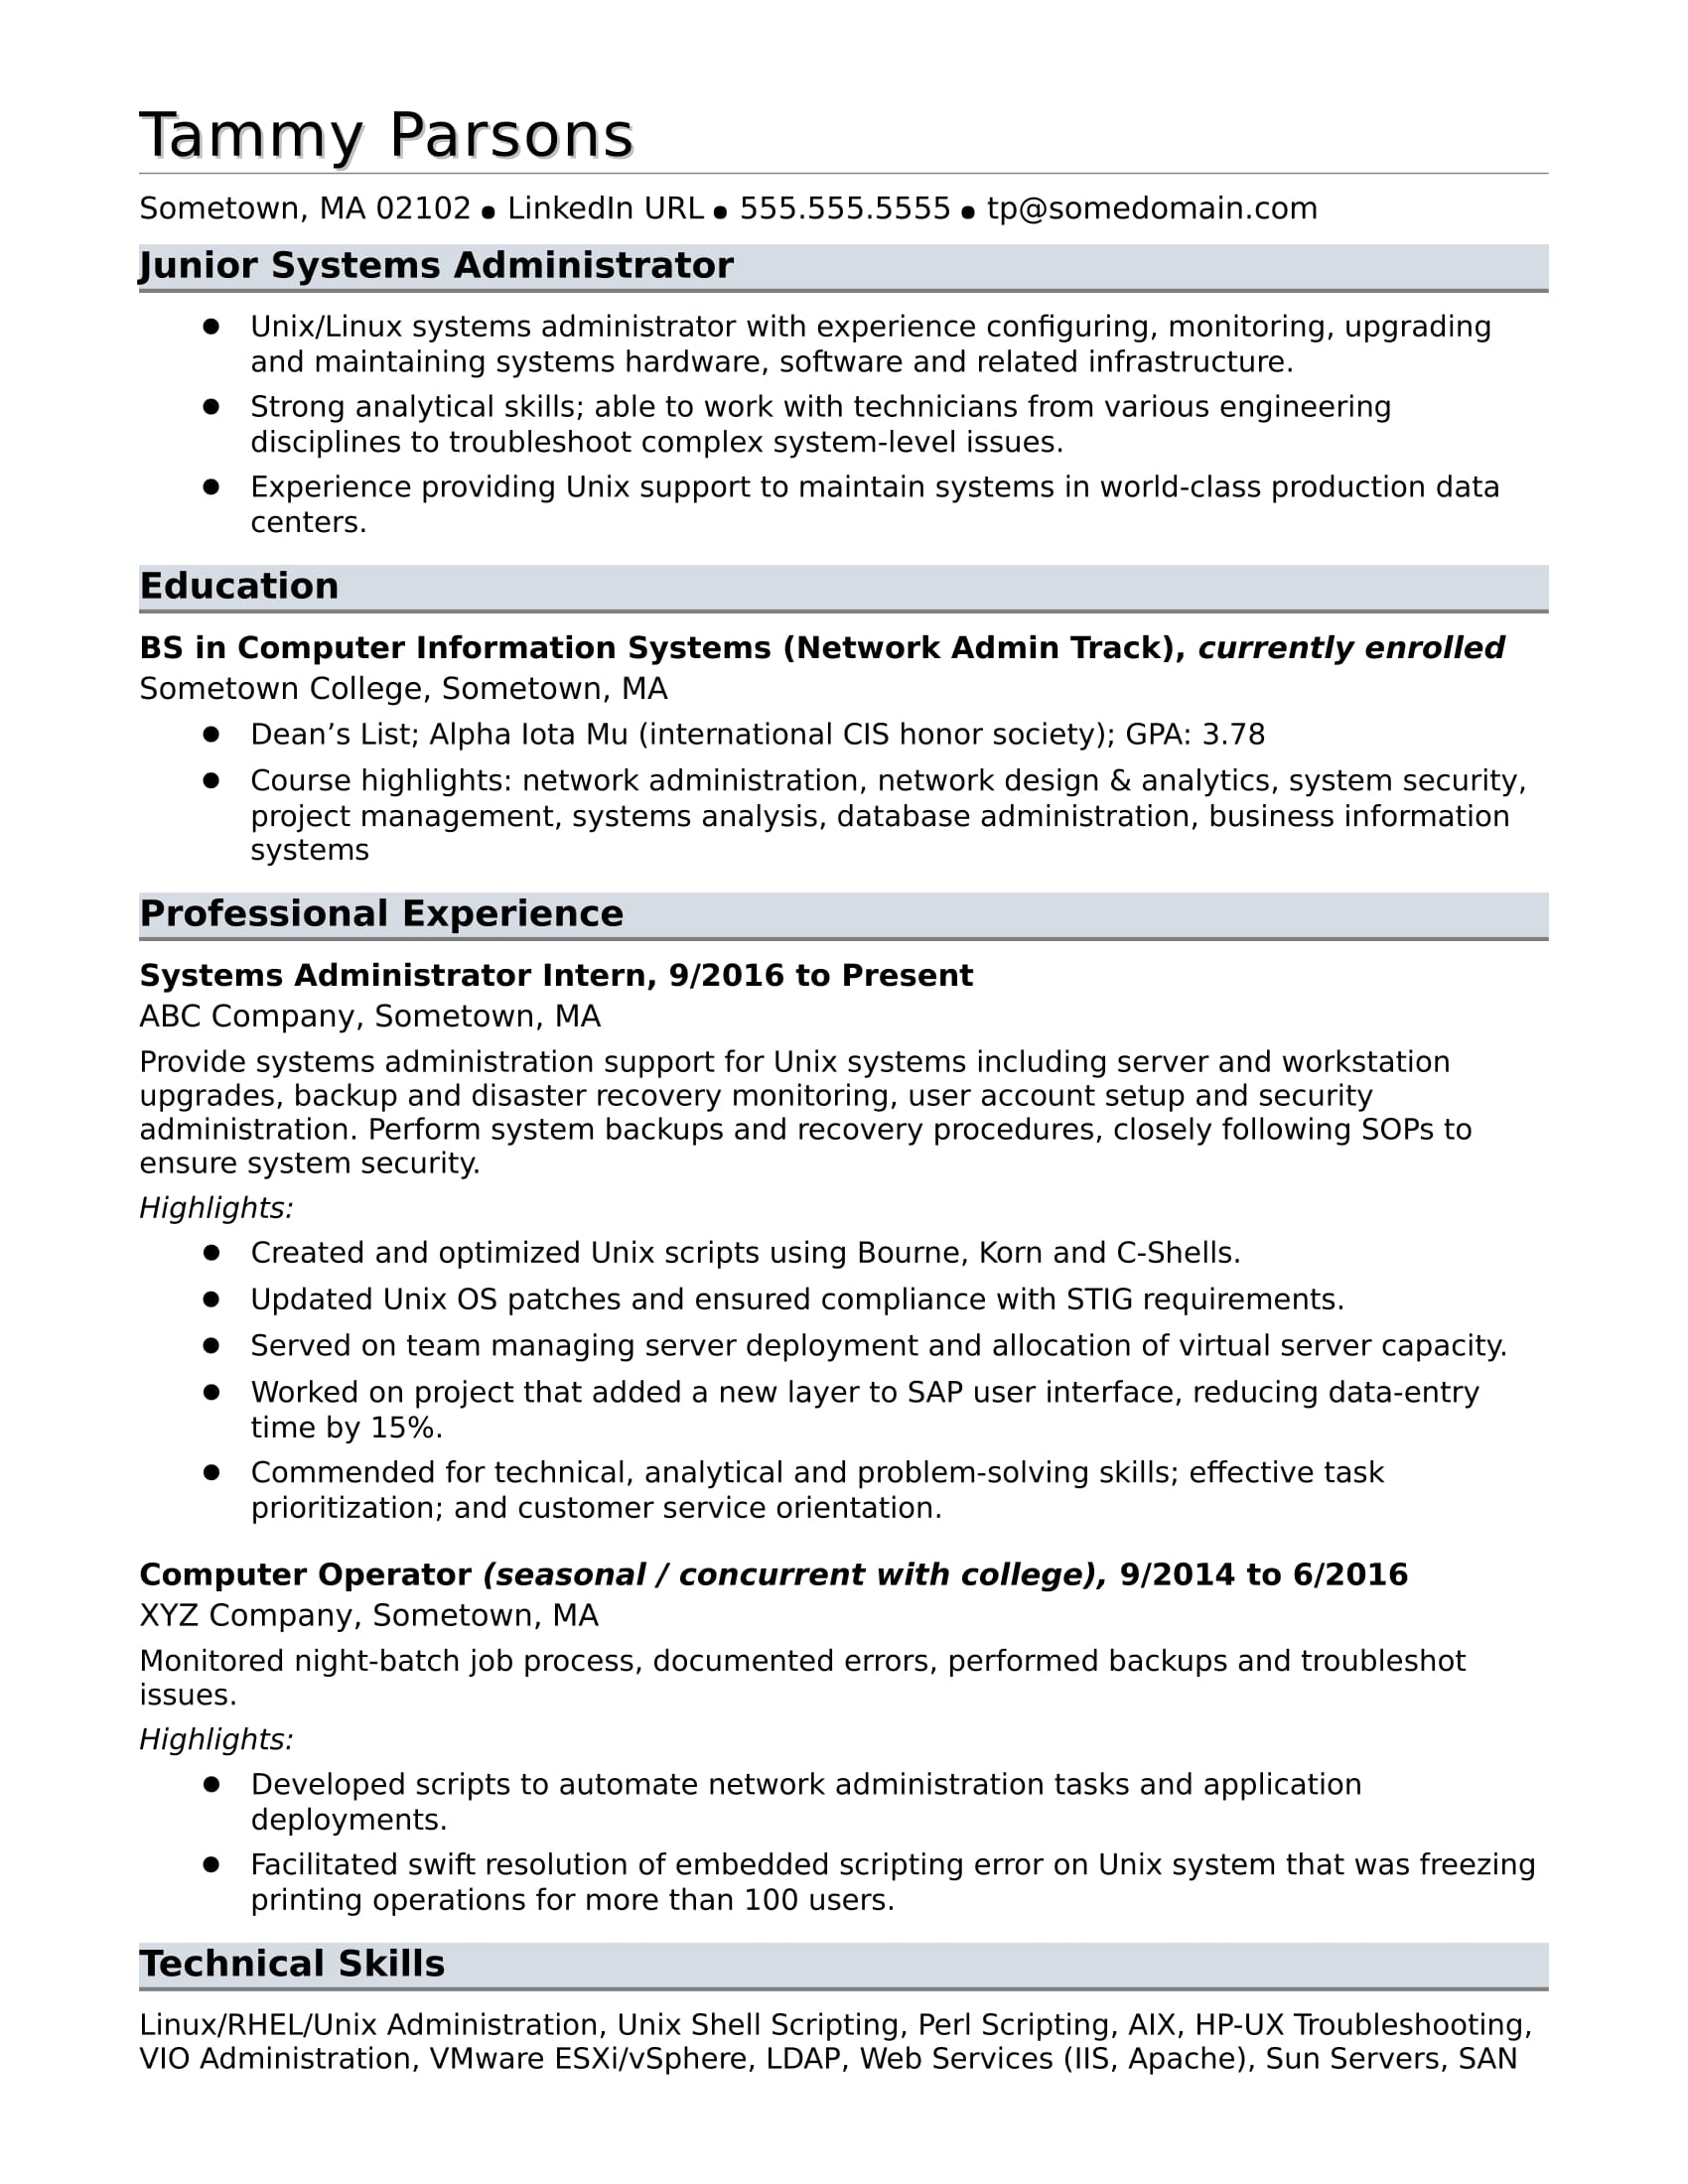 Sample Resume For An Entry Level Systems Administrator  Entry Level Resume